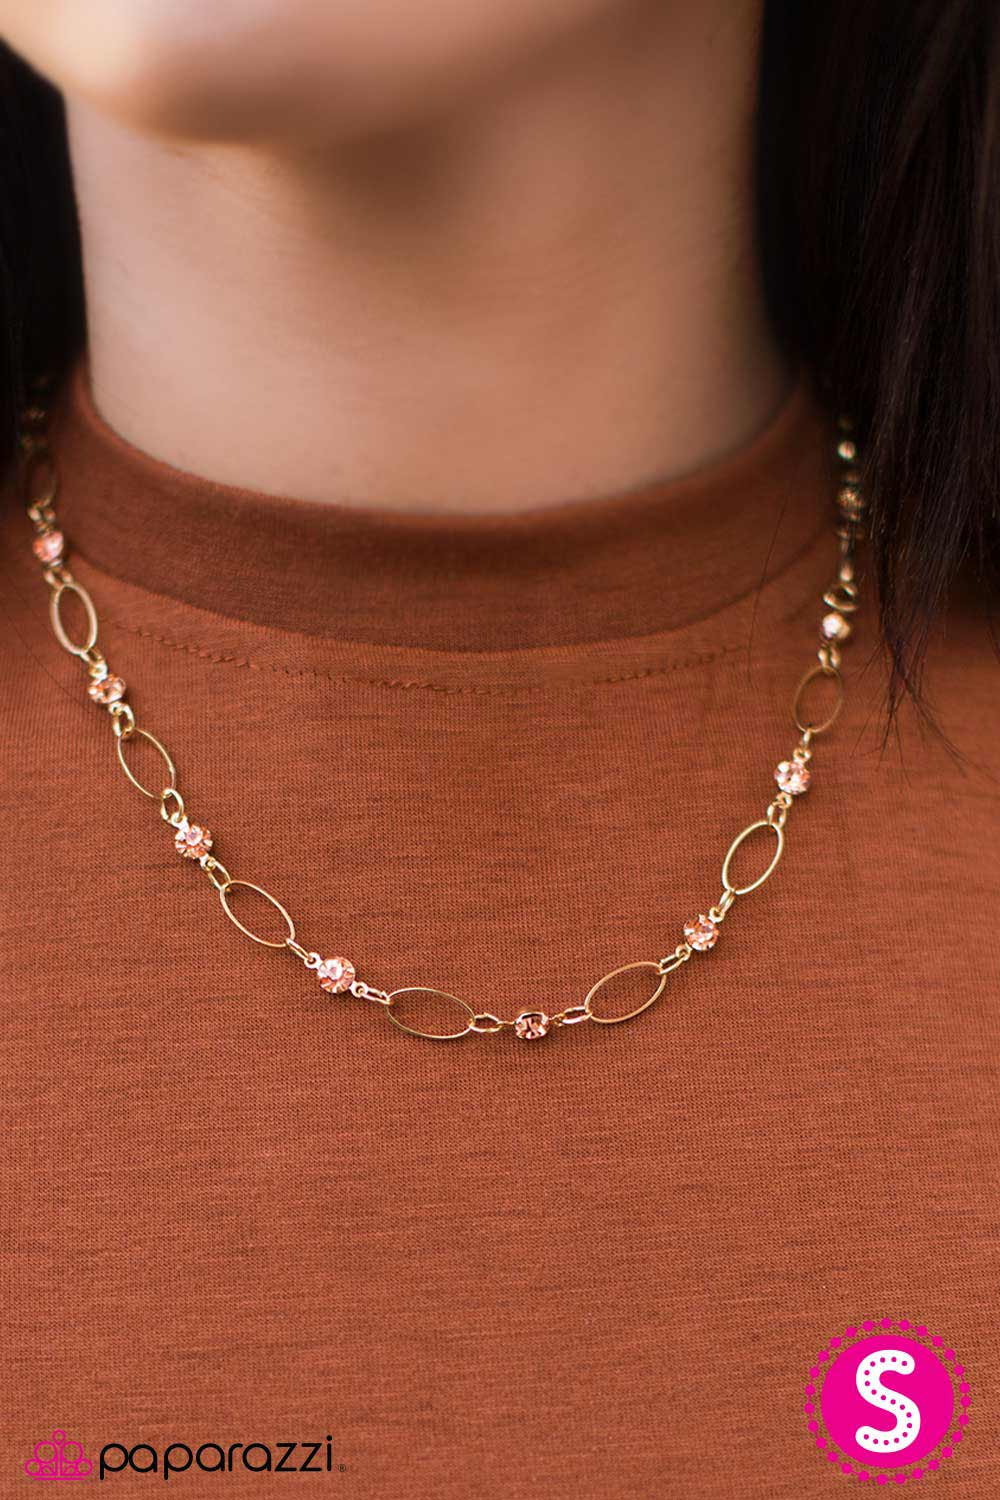 Best Of The Classics - Gold - Paparazzi necklace